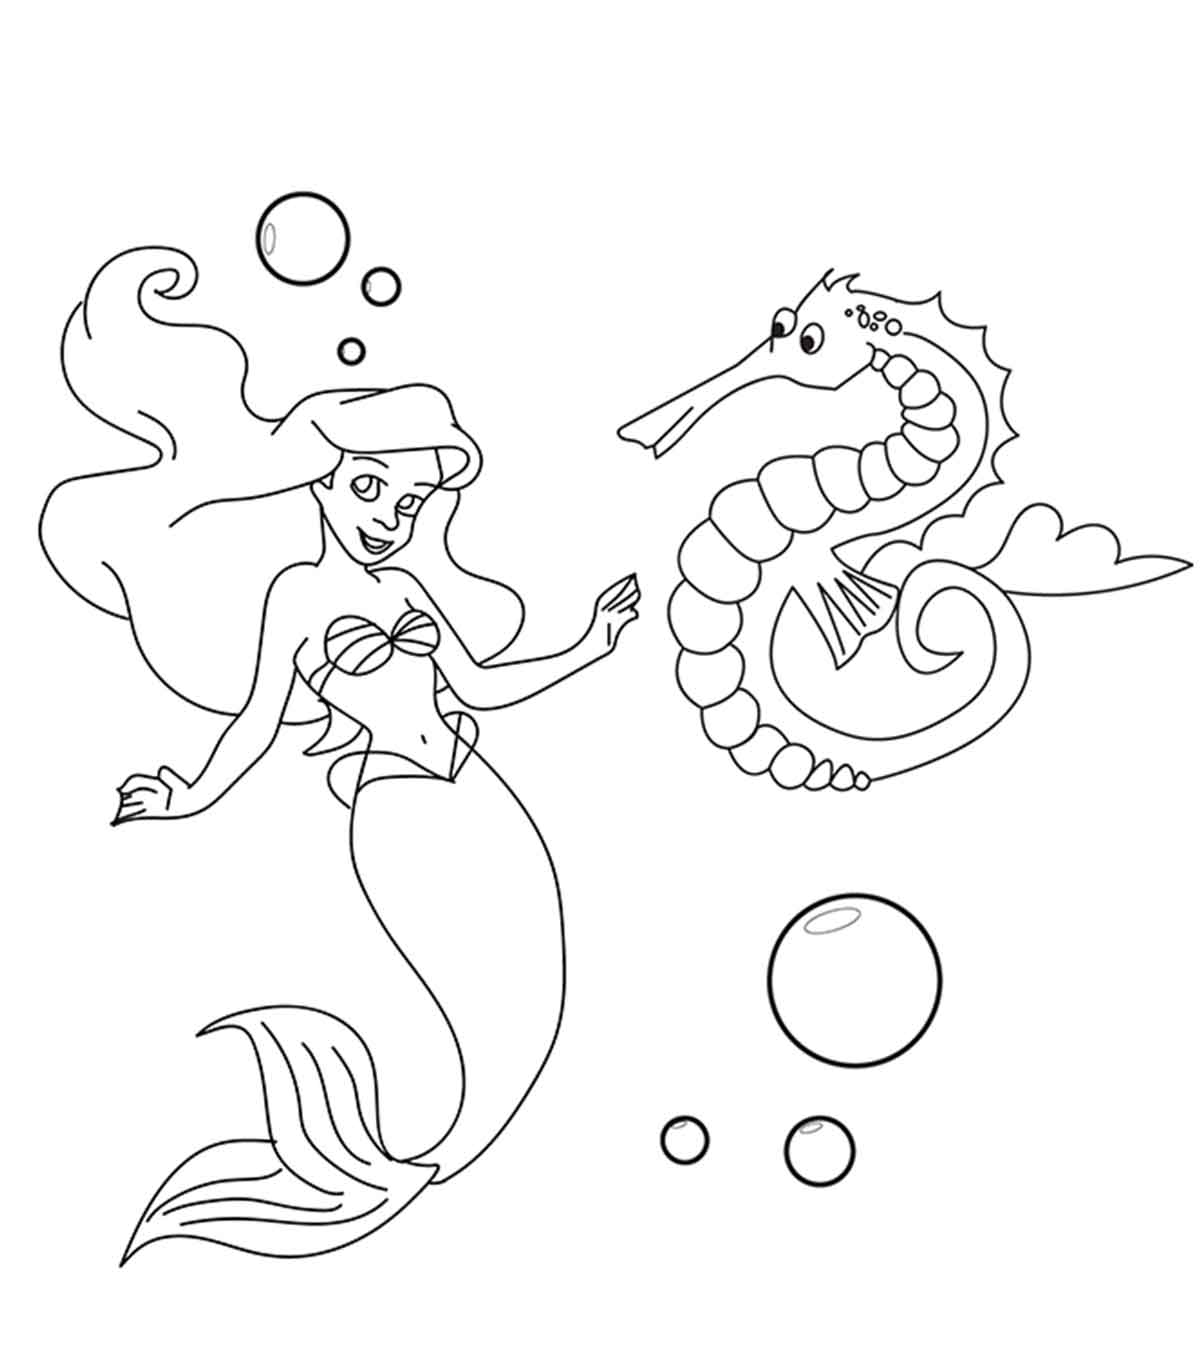 Pregnancy Coloring Pages: Free Pregnancy Printables for Mom-to-Be ... | 1350x1200